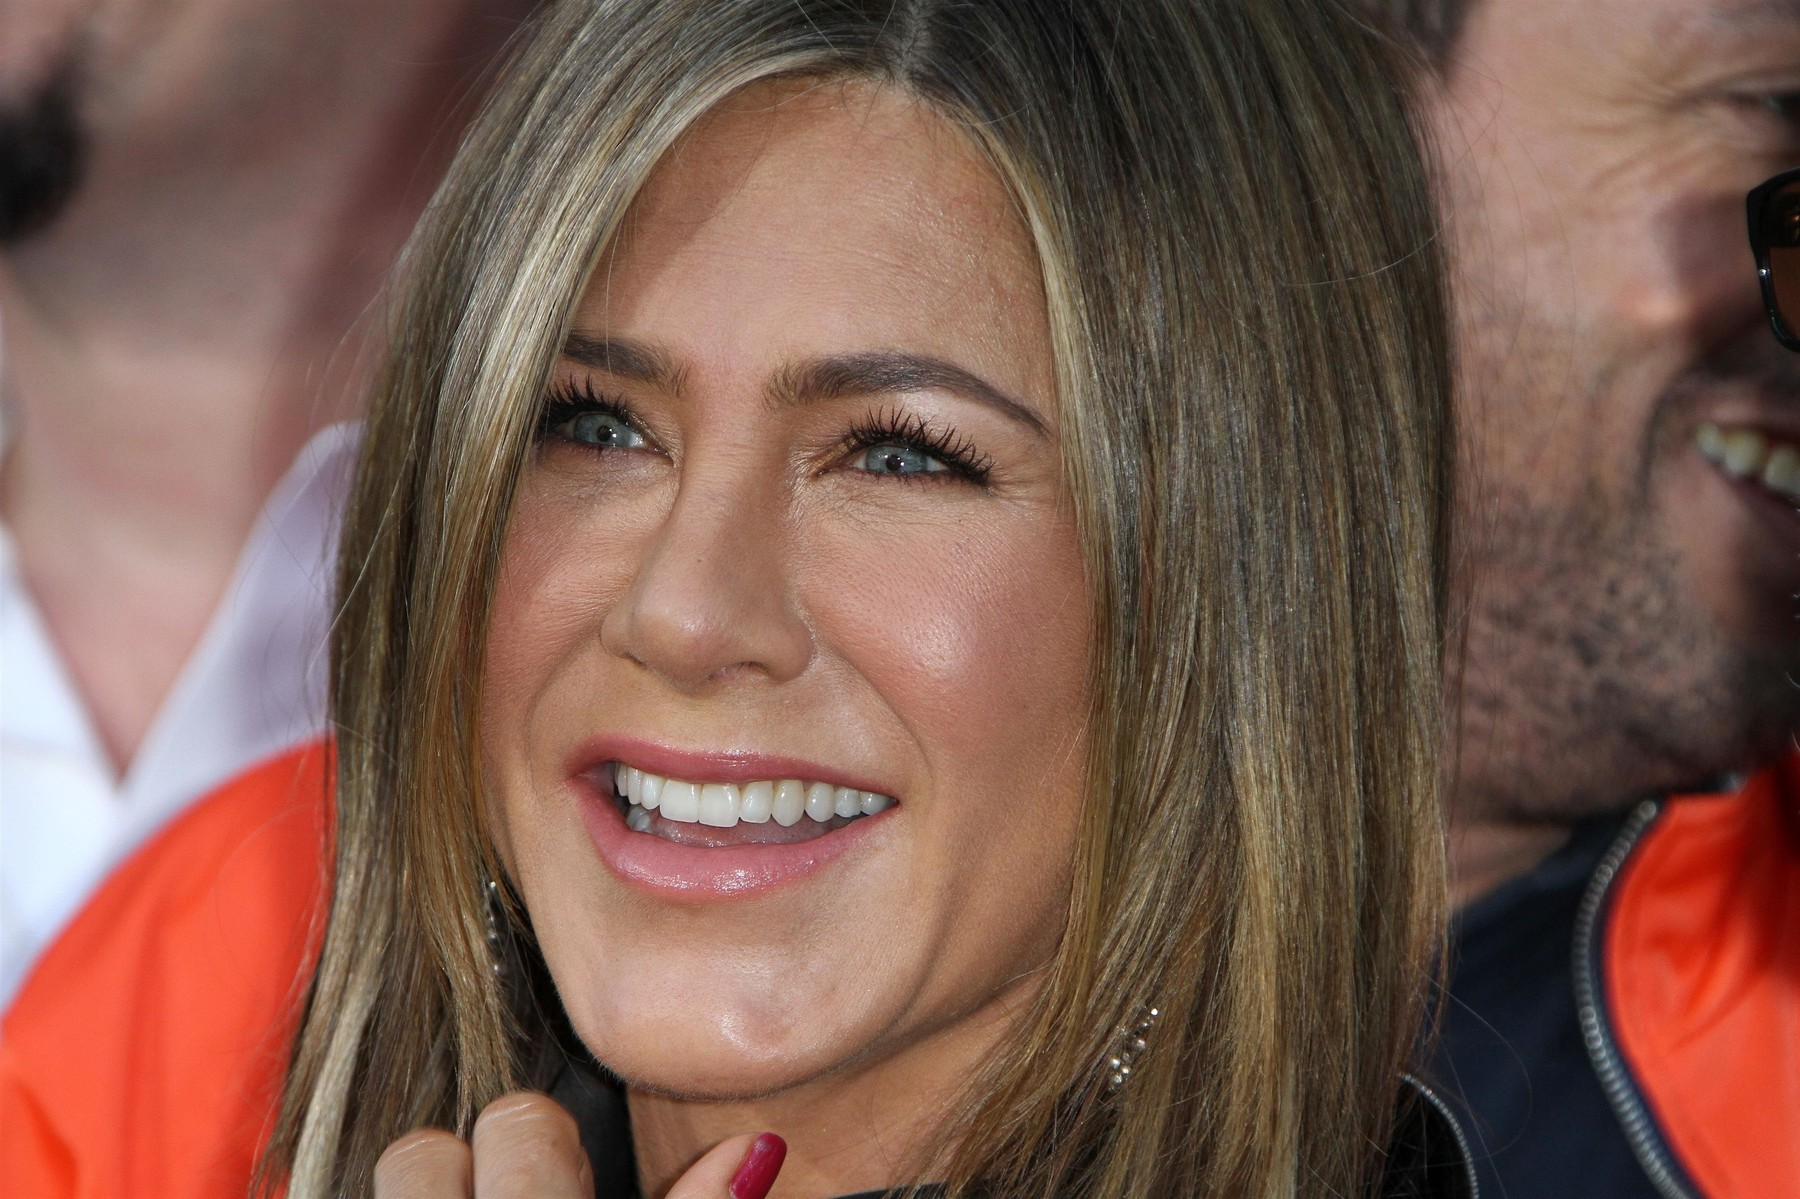 Dzenifer Aniston Jennifer Aniston